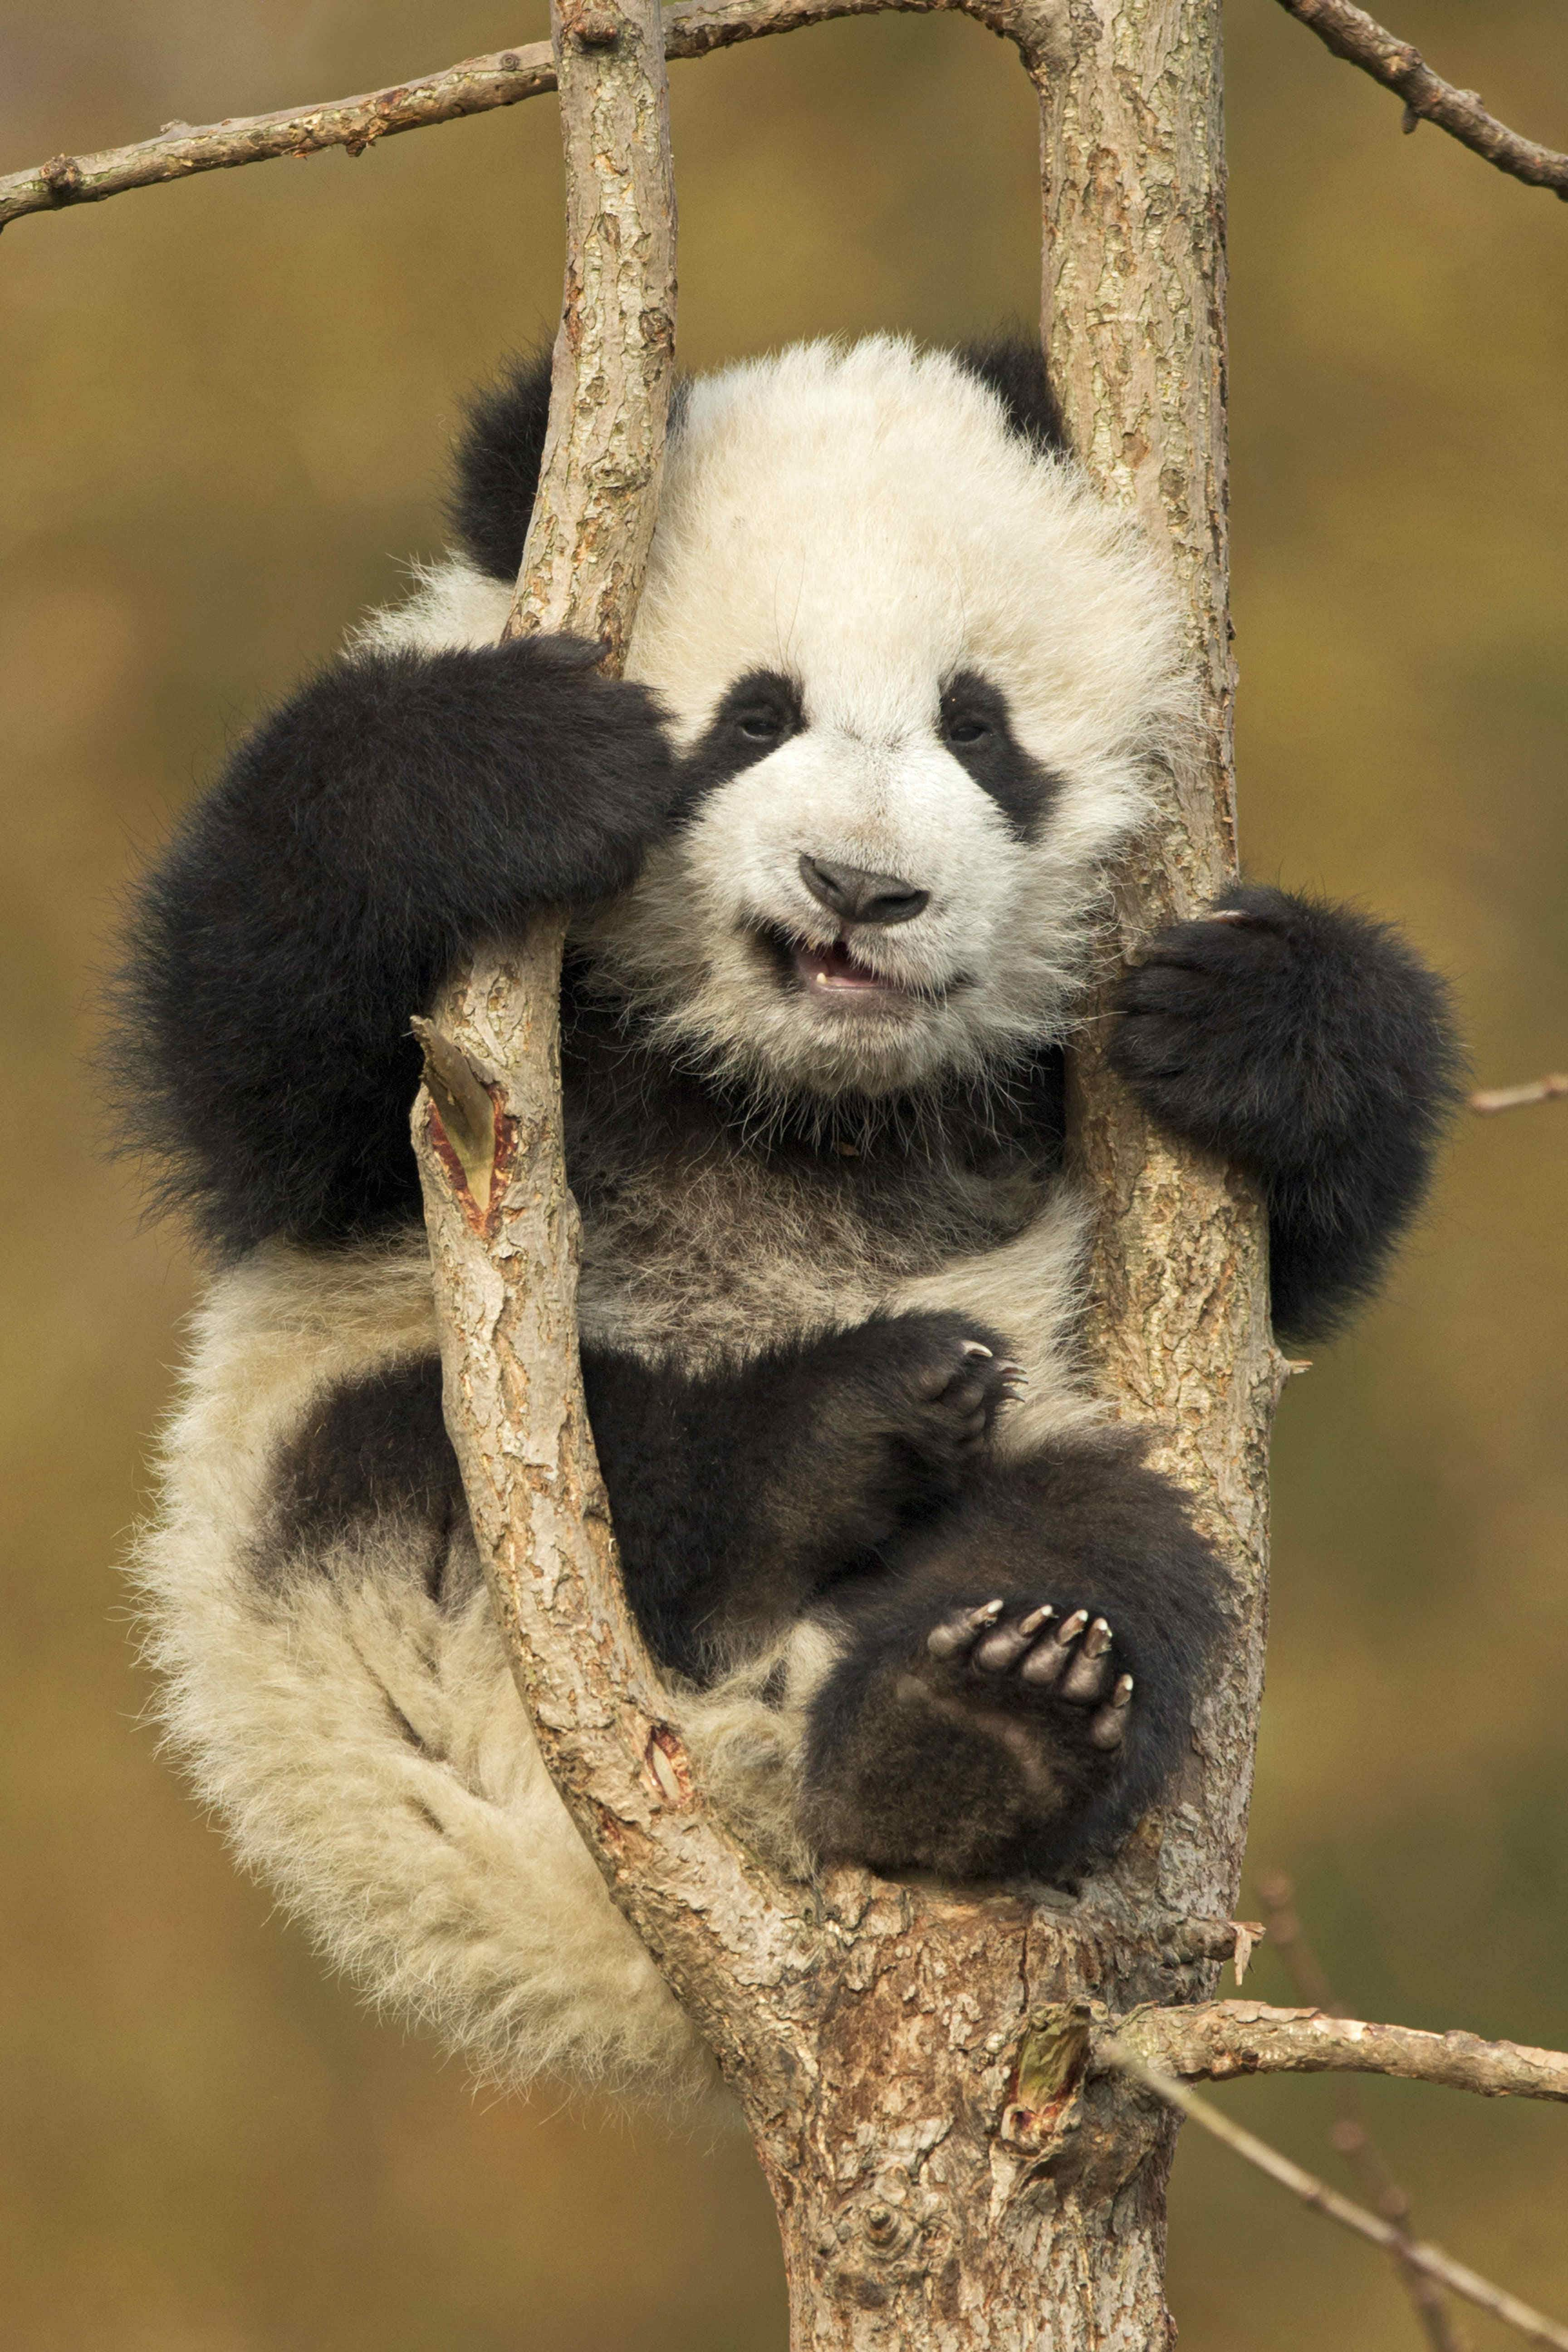 An adorable baby panda got stuck in a tree in China and decided to take a nap